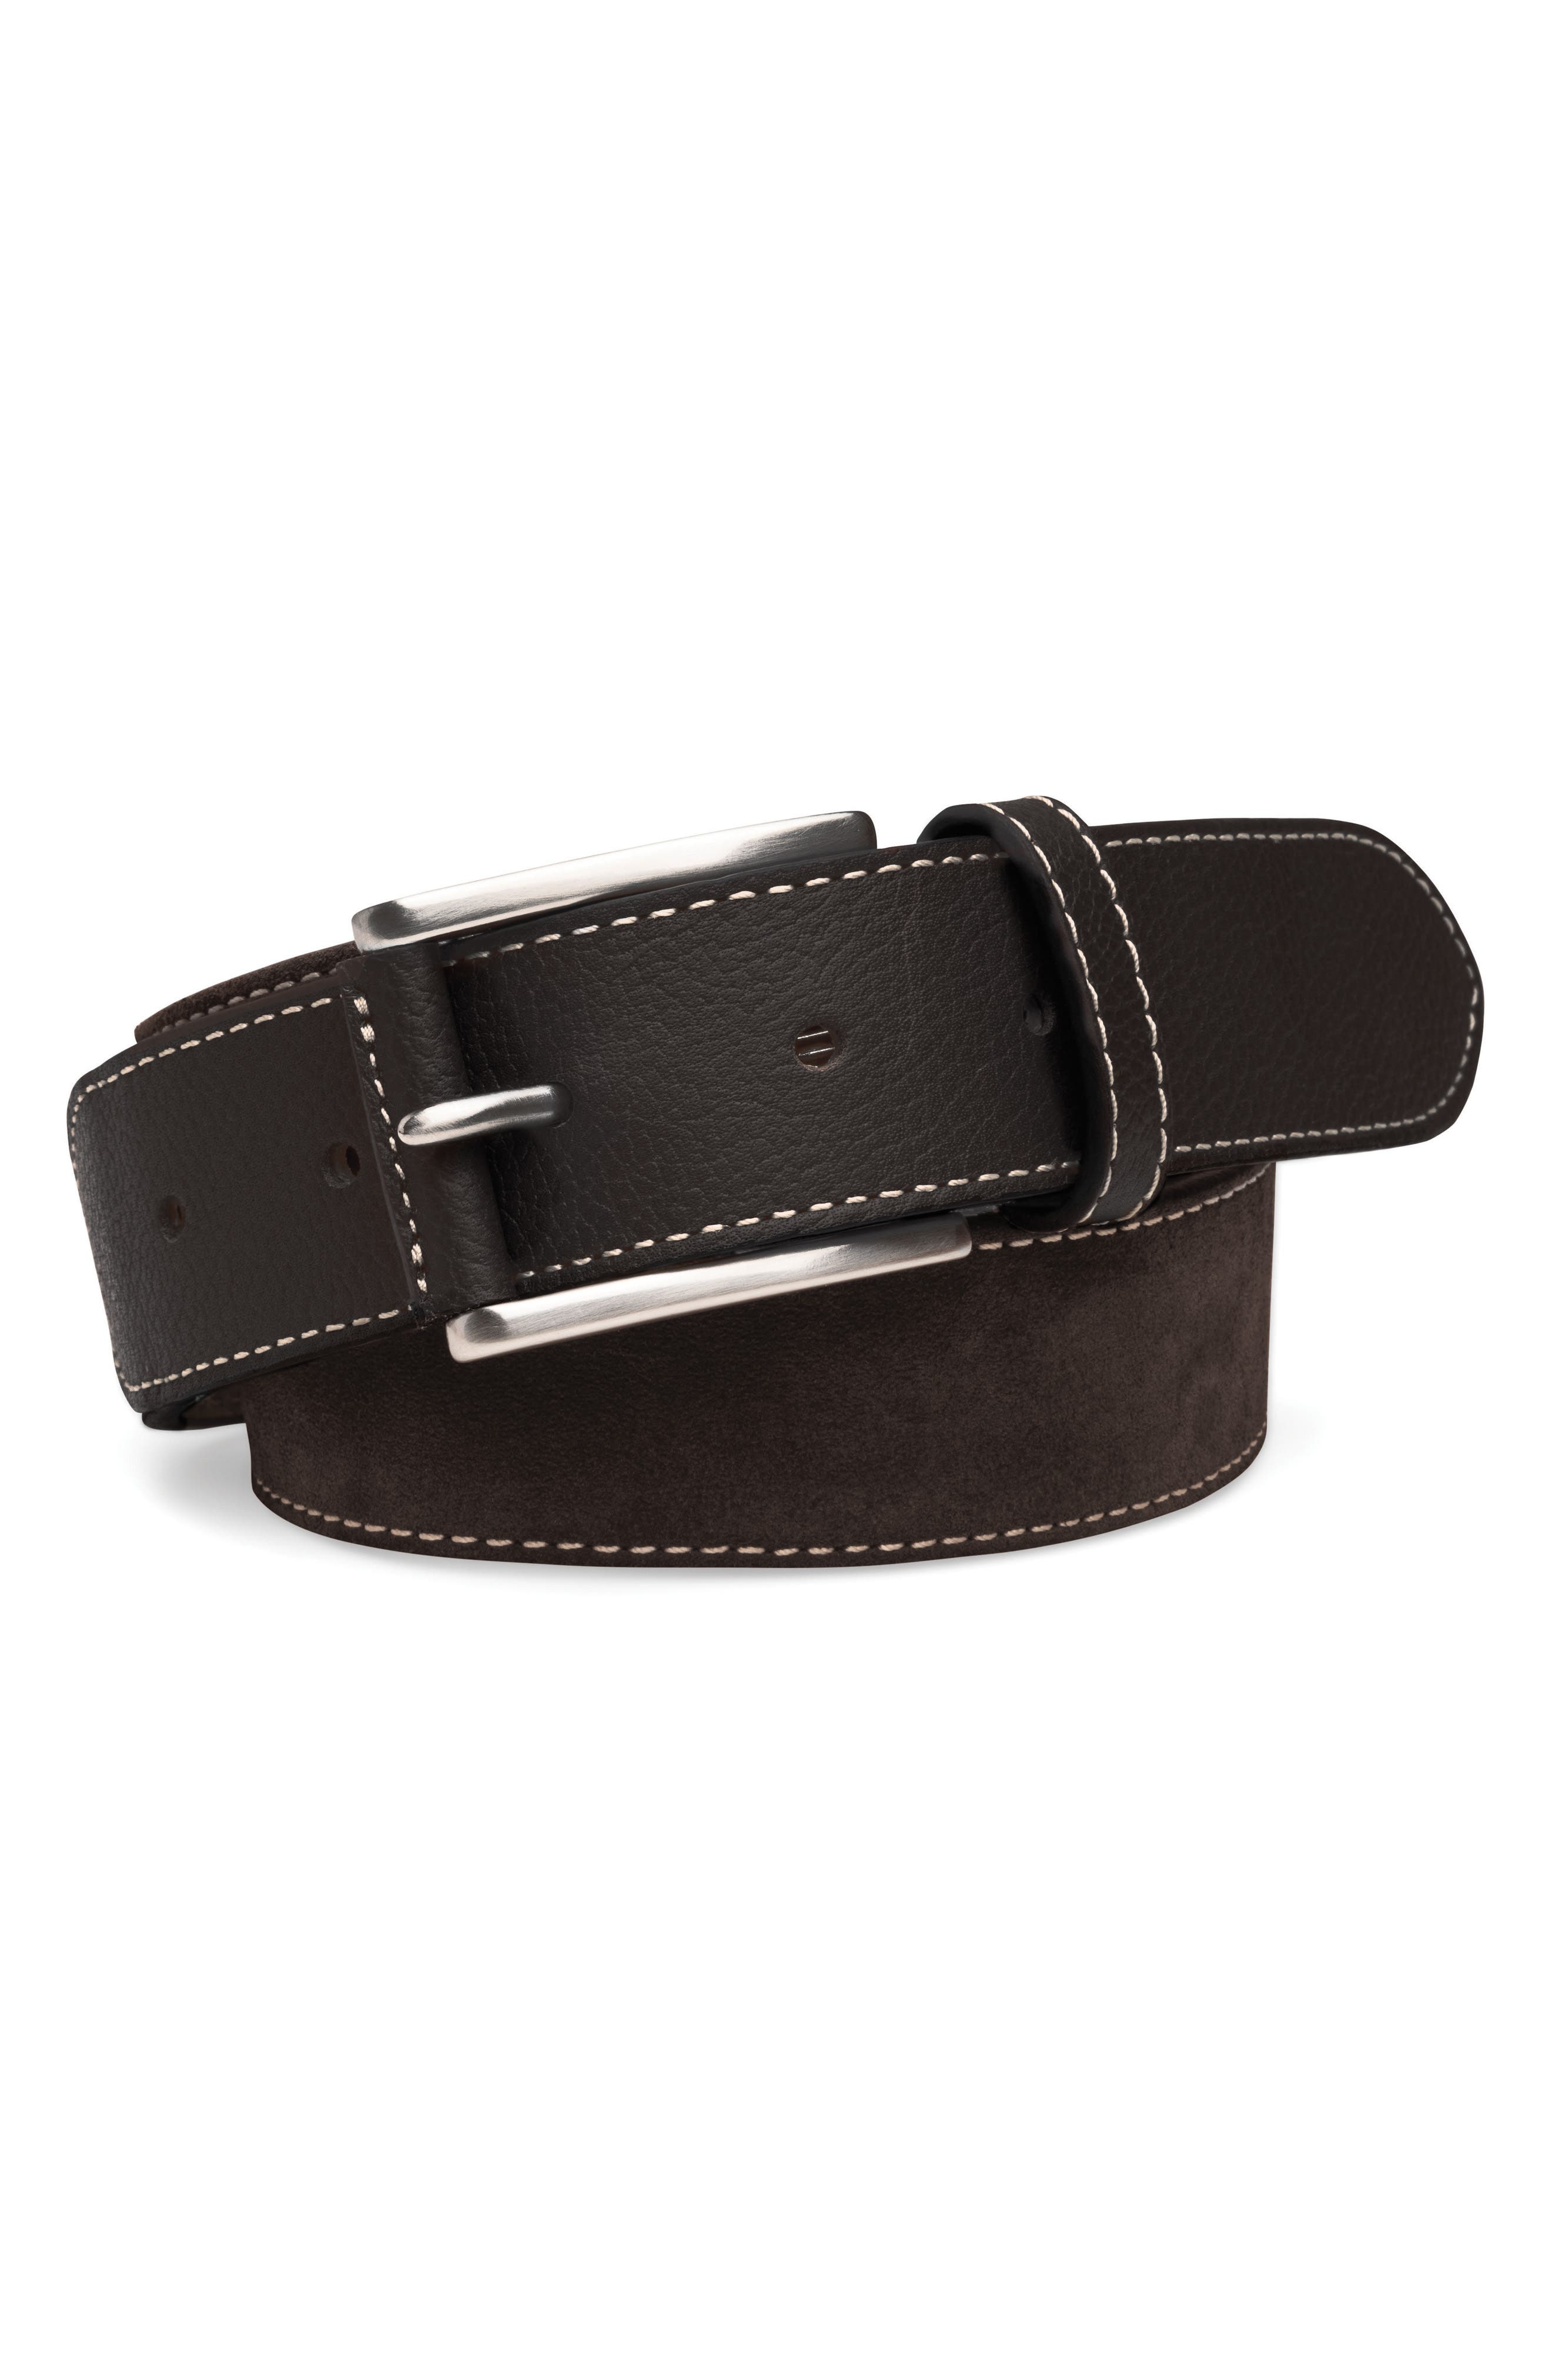 Fall Suede Belt,                             Main thumbnail 1, color,                             202